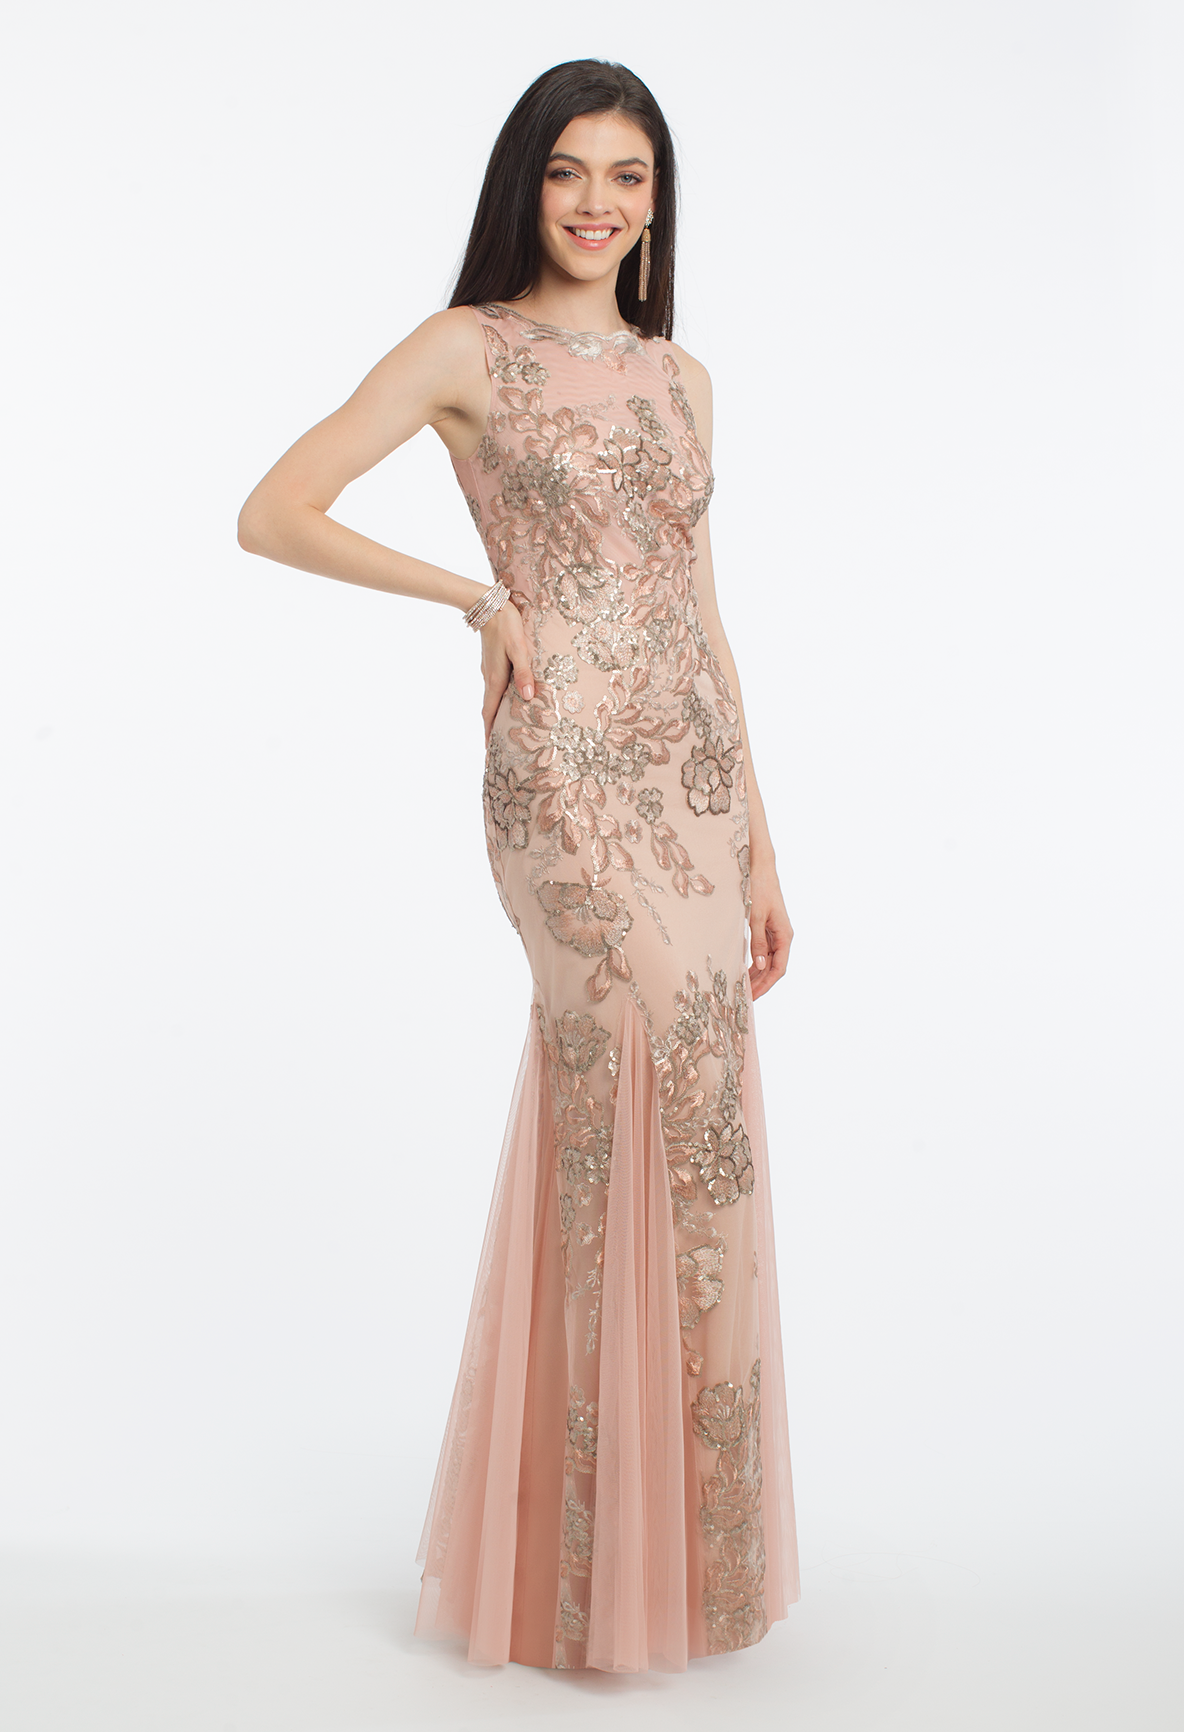 Make your prom night extra special with this glamorous evening gown